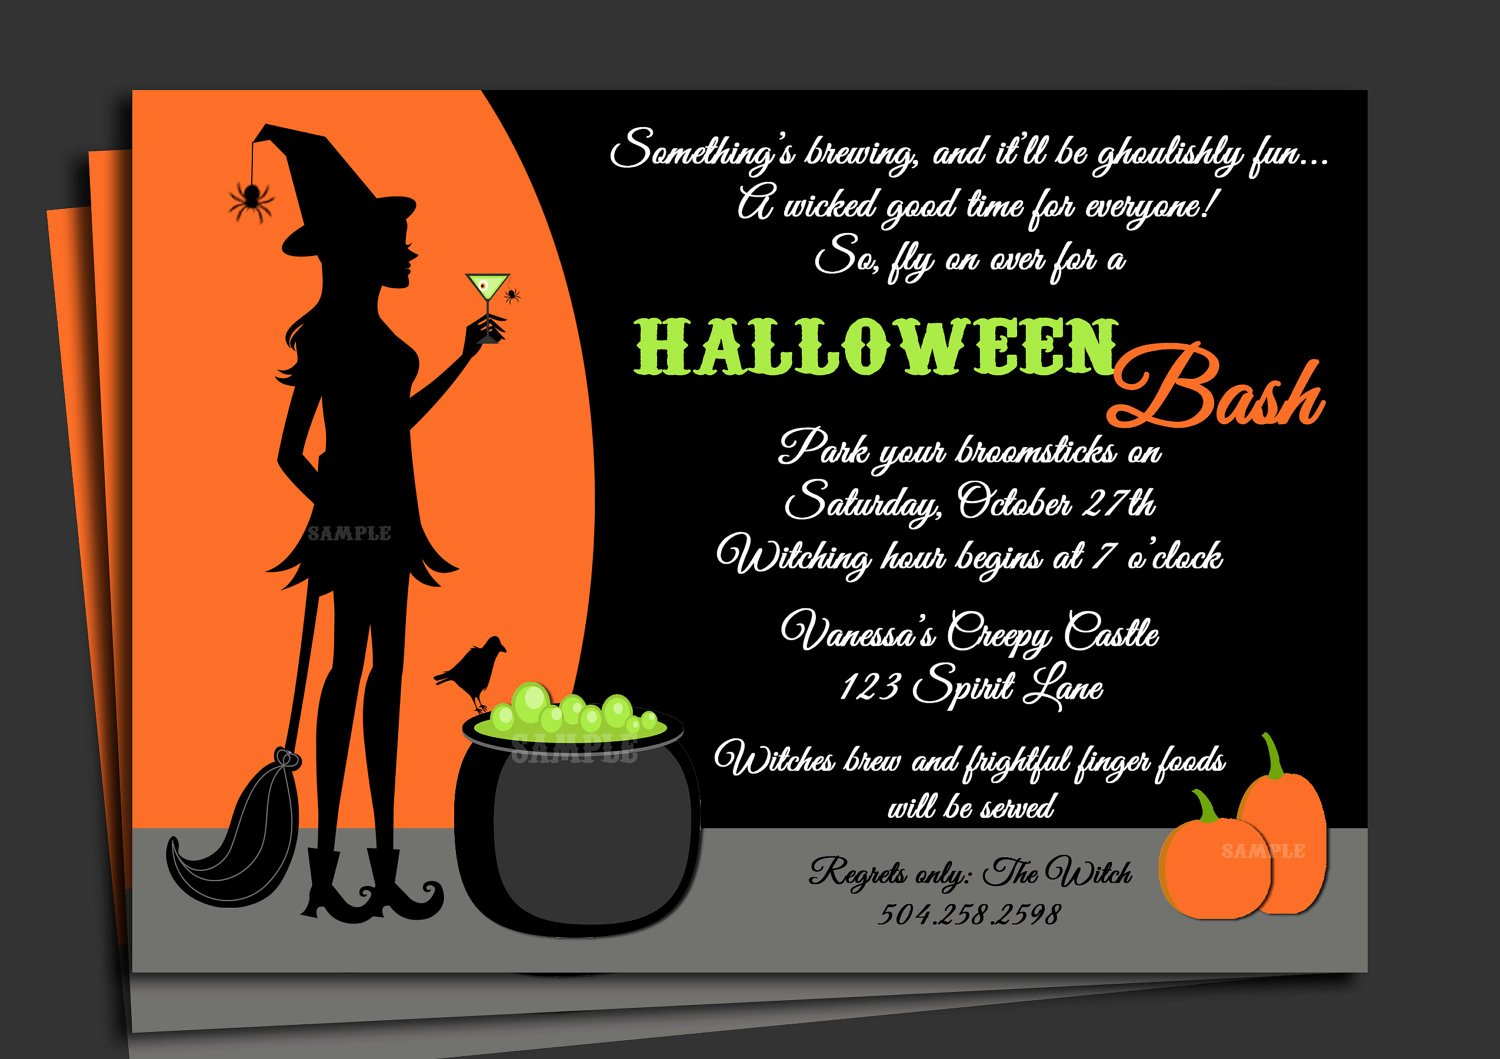 Halloween Party Invitation Template Inspirational Invitation Letter for Halloween Party – Festival Collections